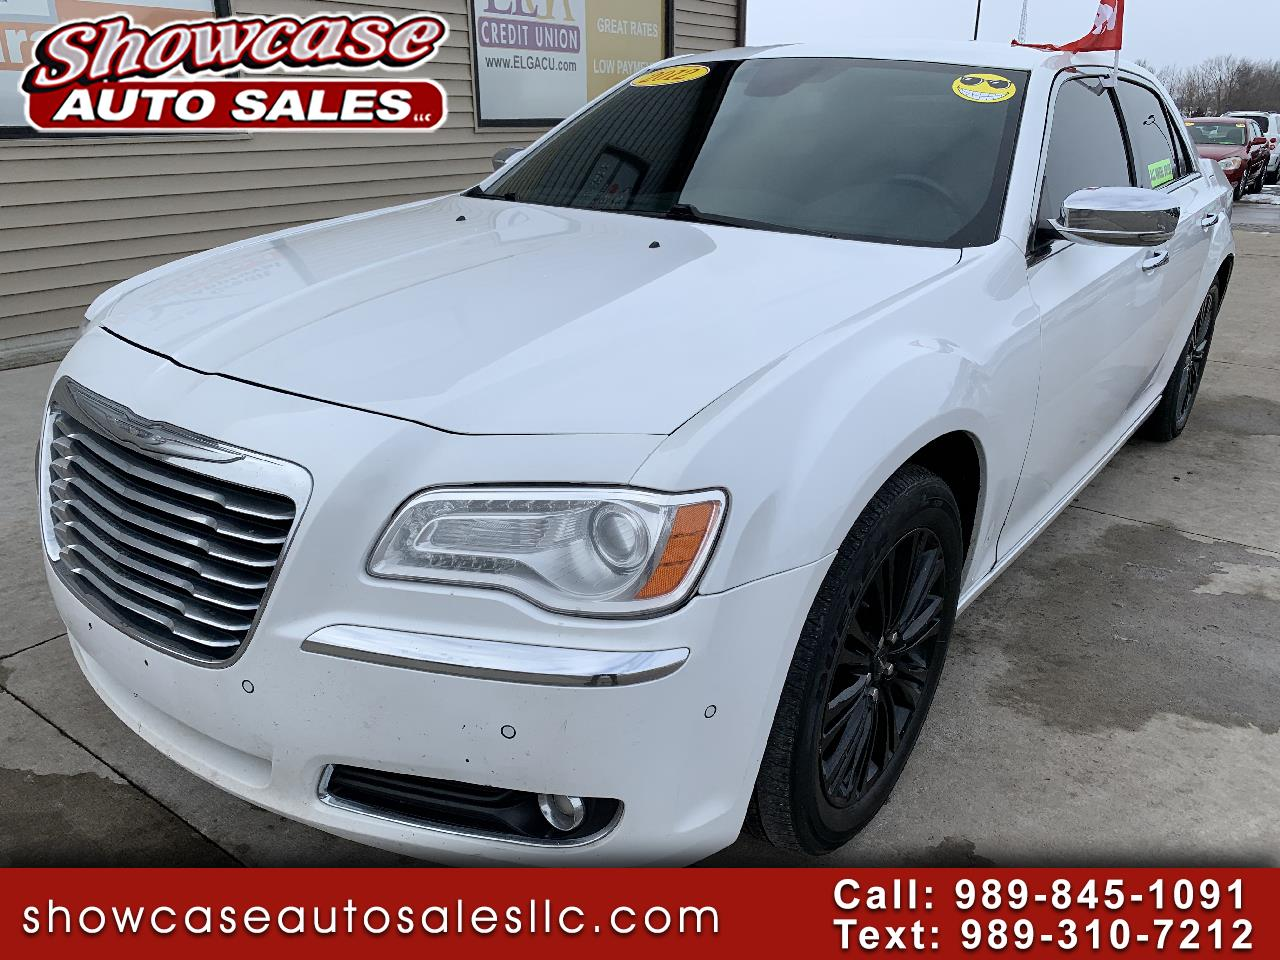 Chrysler 300 4dr Sdn V6 Limited AWD 2012